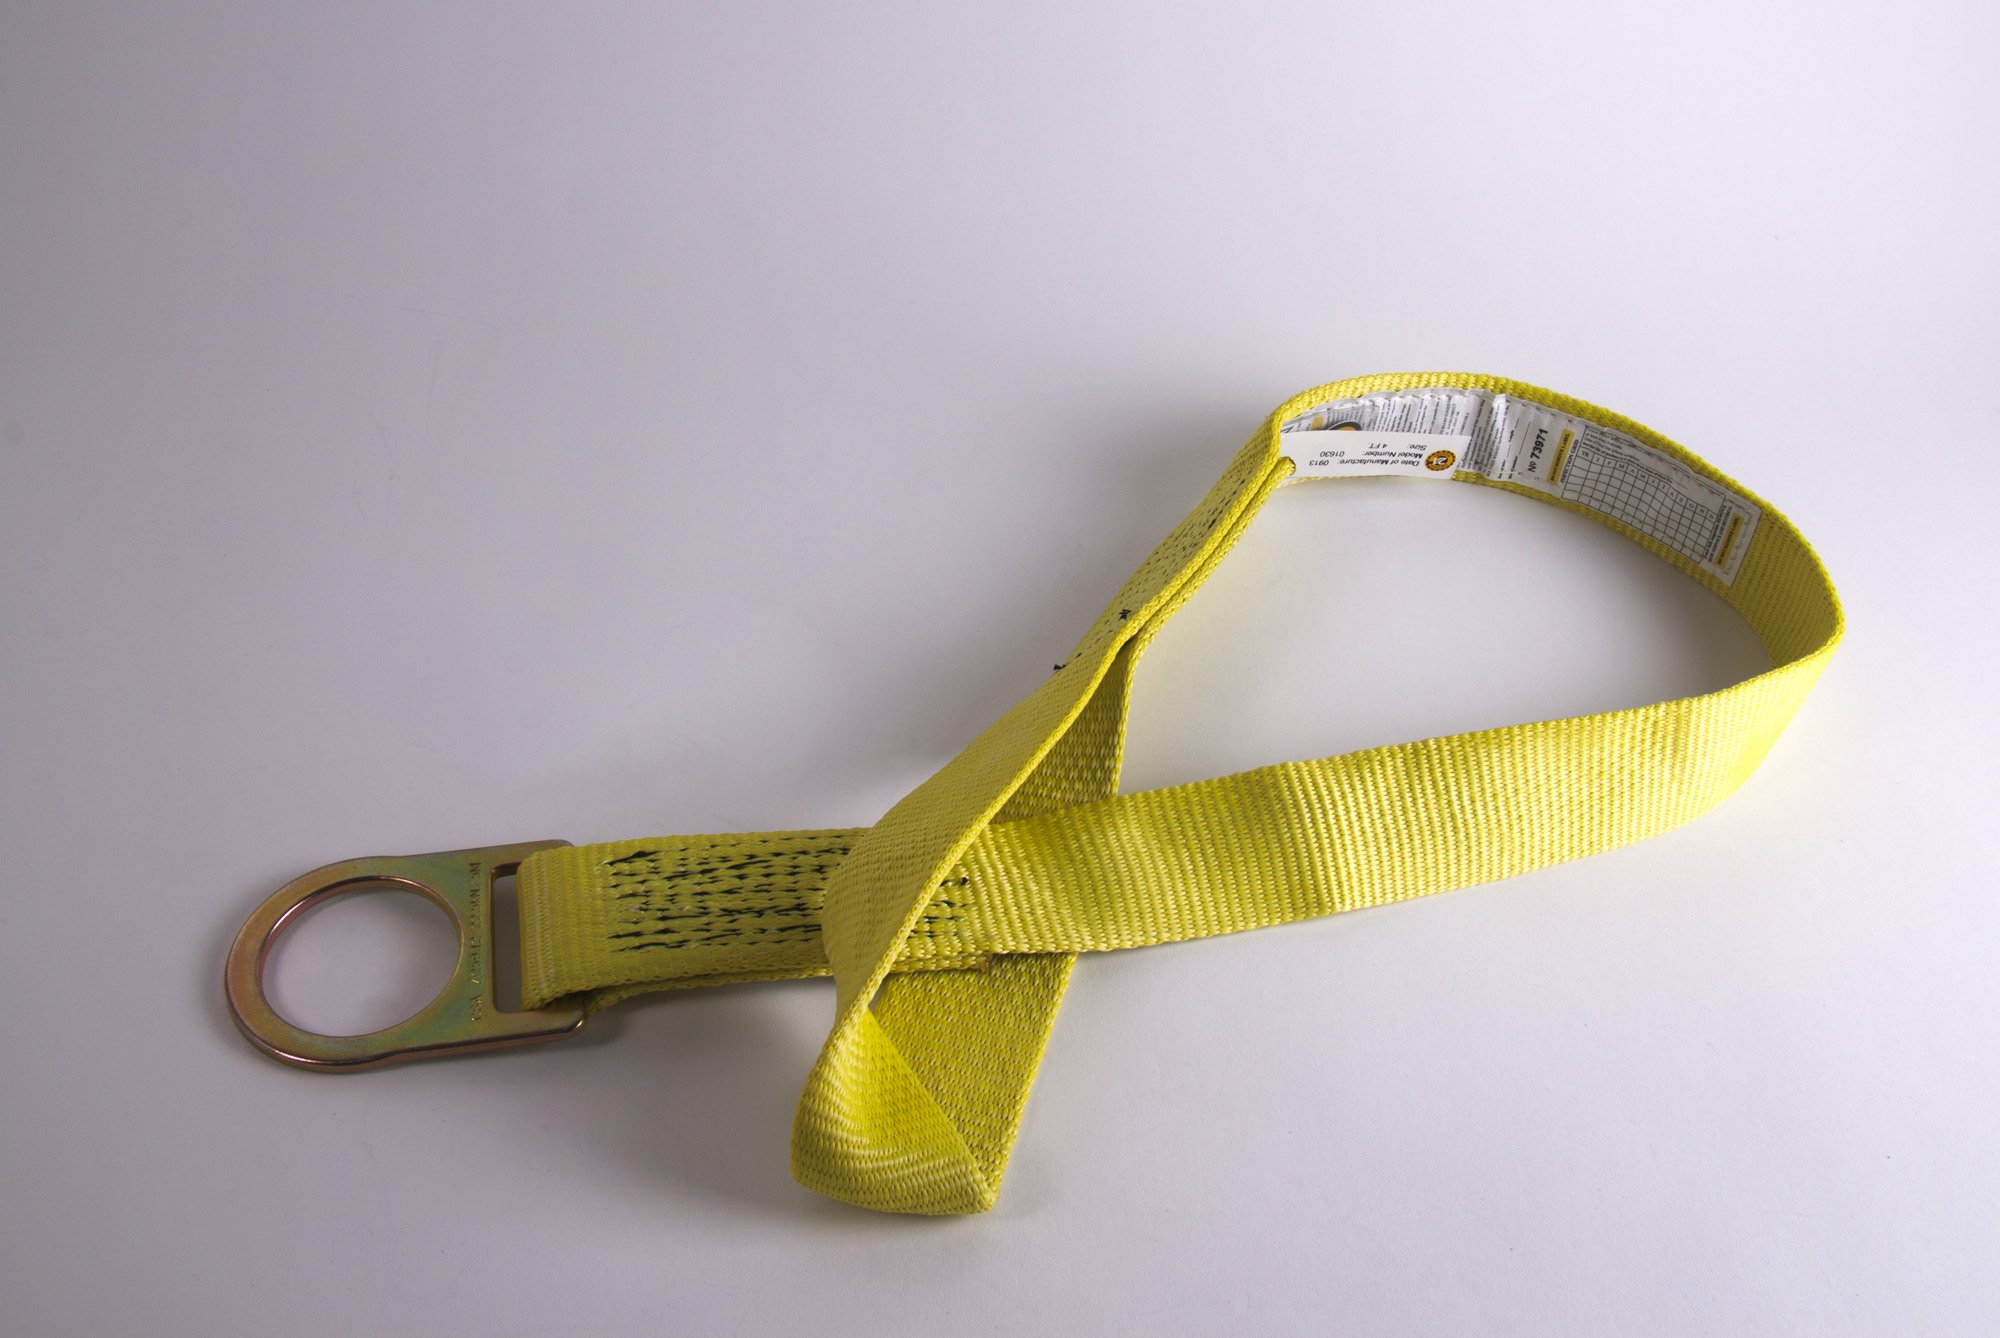 Guardian Fall Protection 01625 XARM-72 6-Foot Cross Arm Strap with Large and Small D-Rings